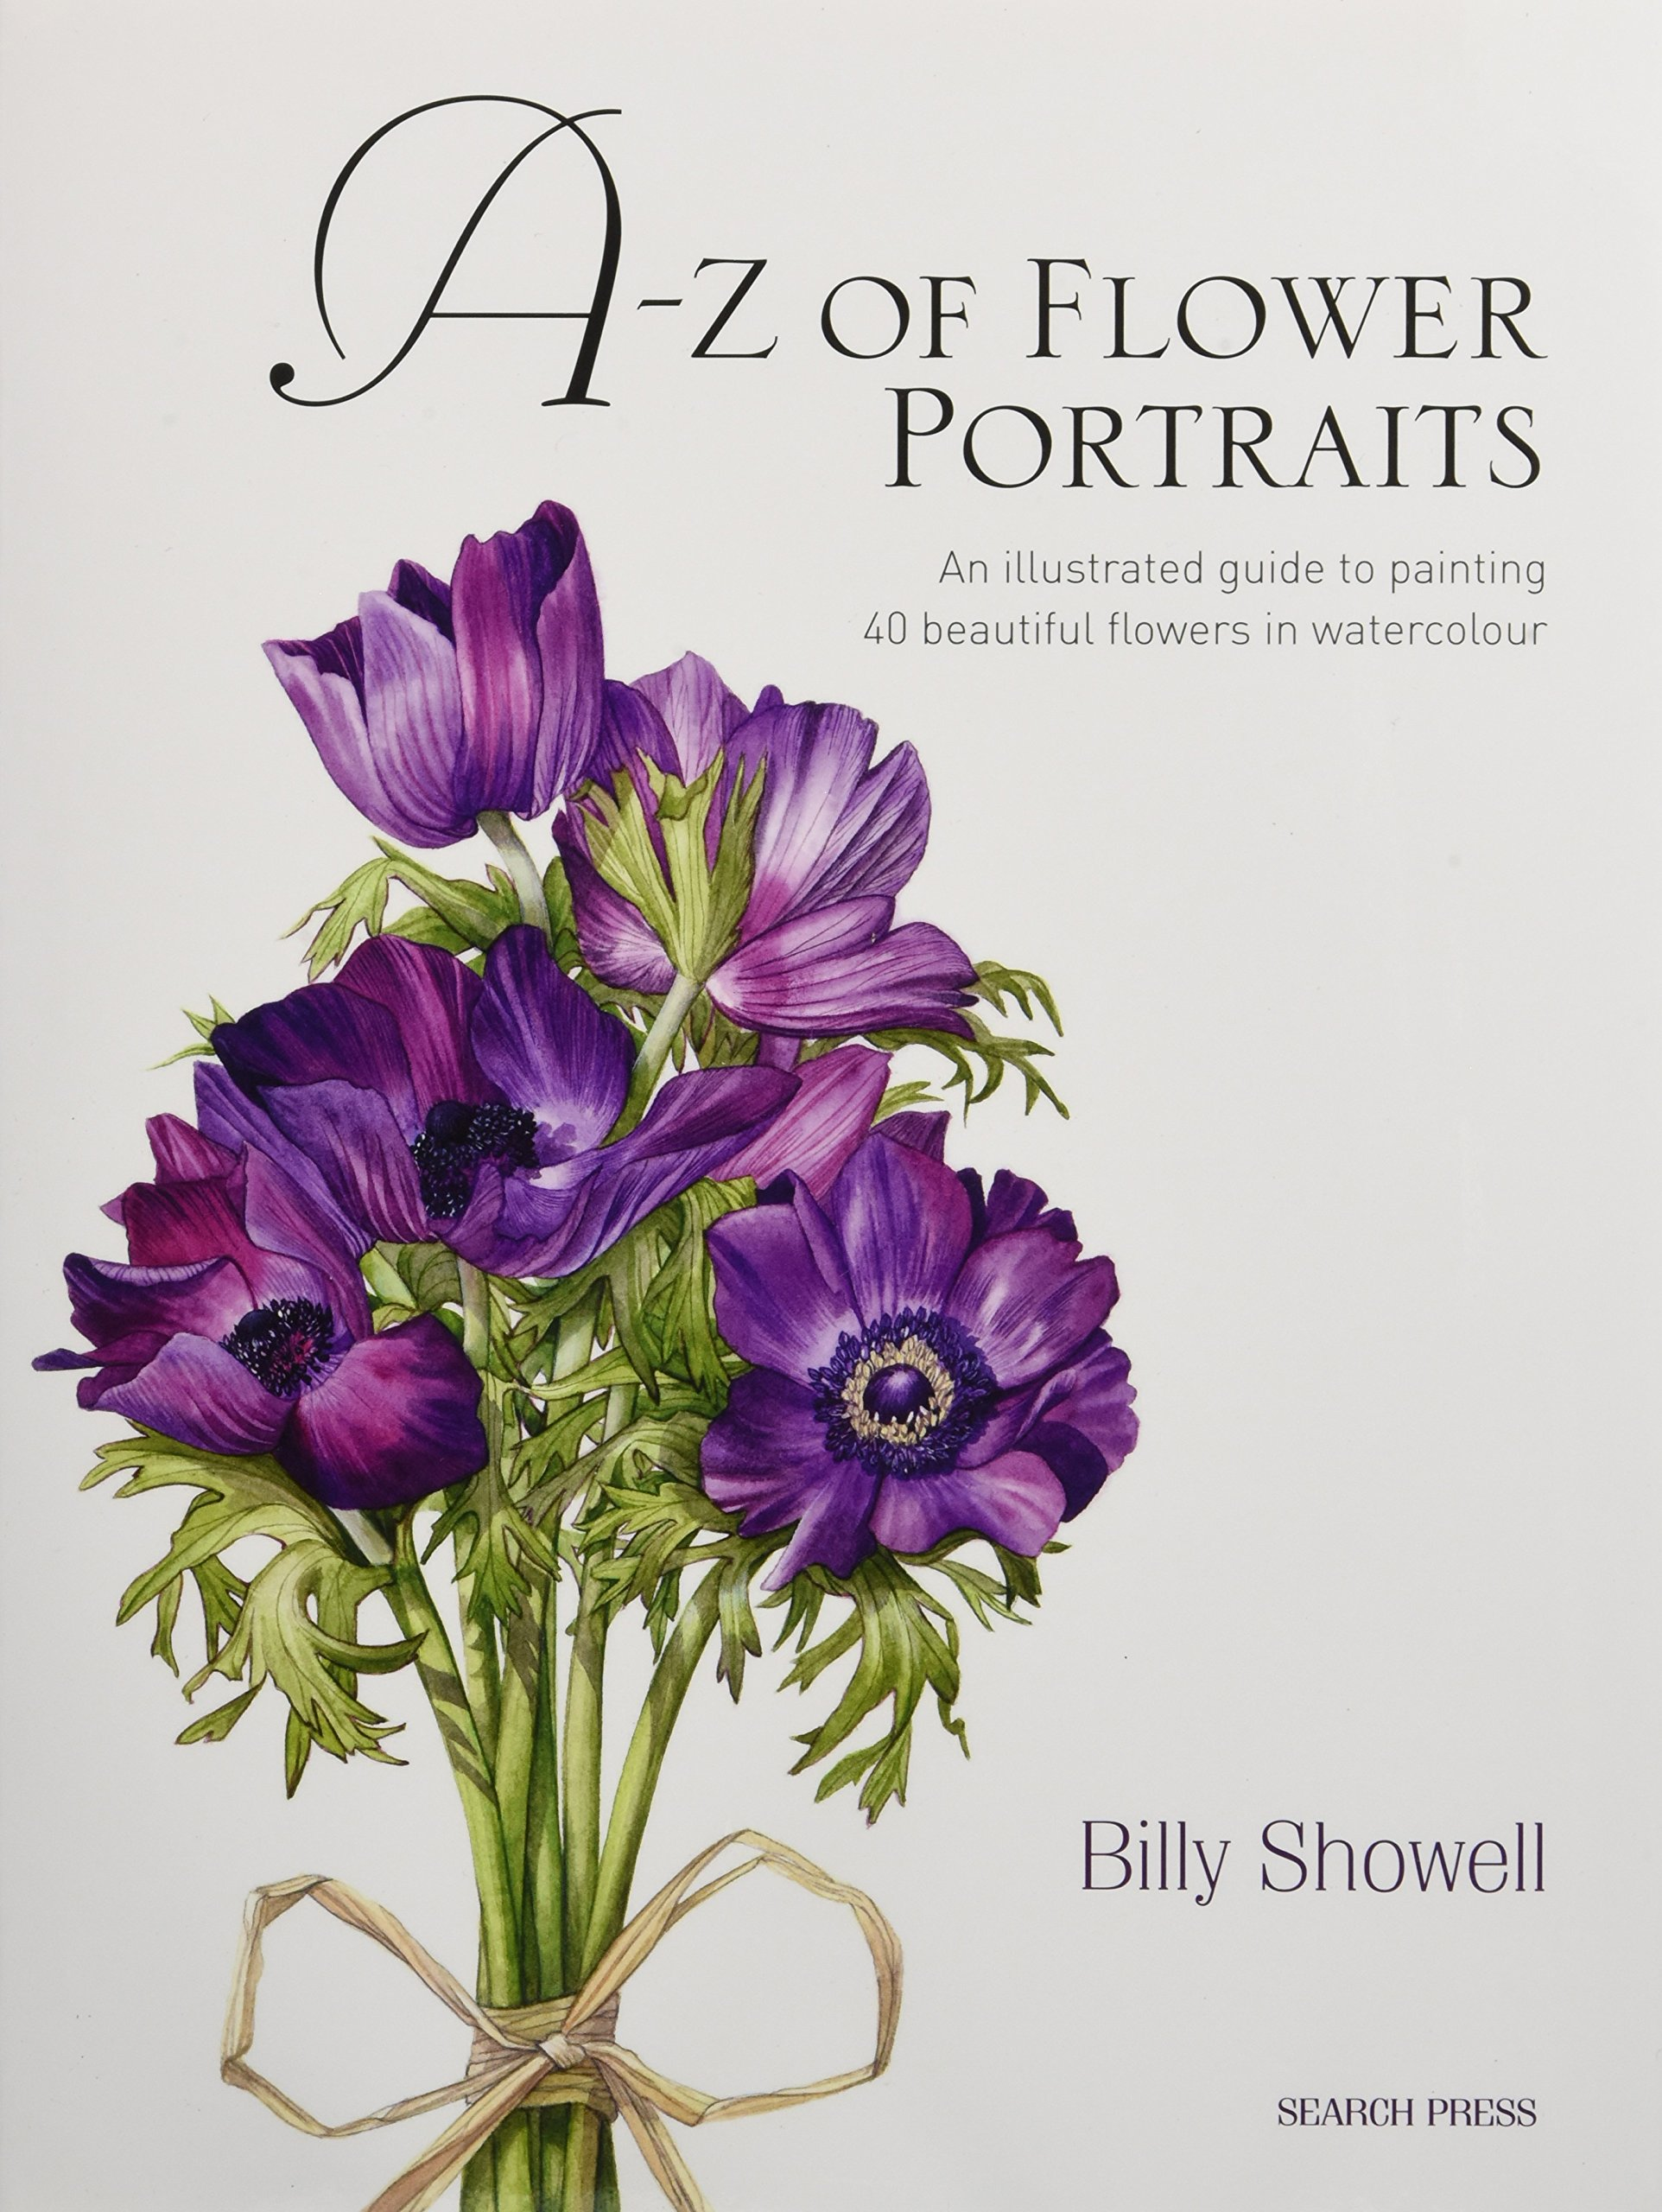 Watercolor books by search press - A Z Of Flower Portraits An Illustrated Guide To Painting 40 Beautiful Flowers In Watercolour Billy Showell 0884684835291 Amazon Com Books